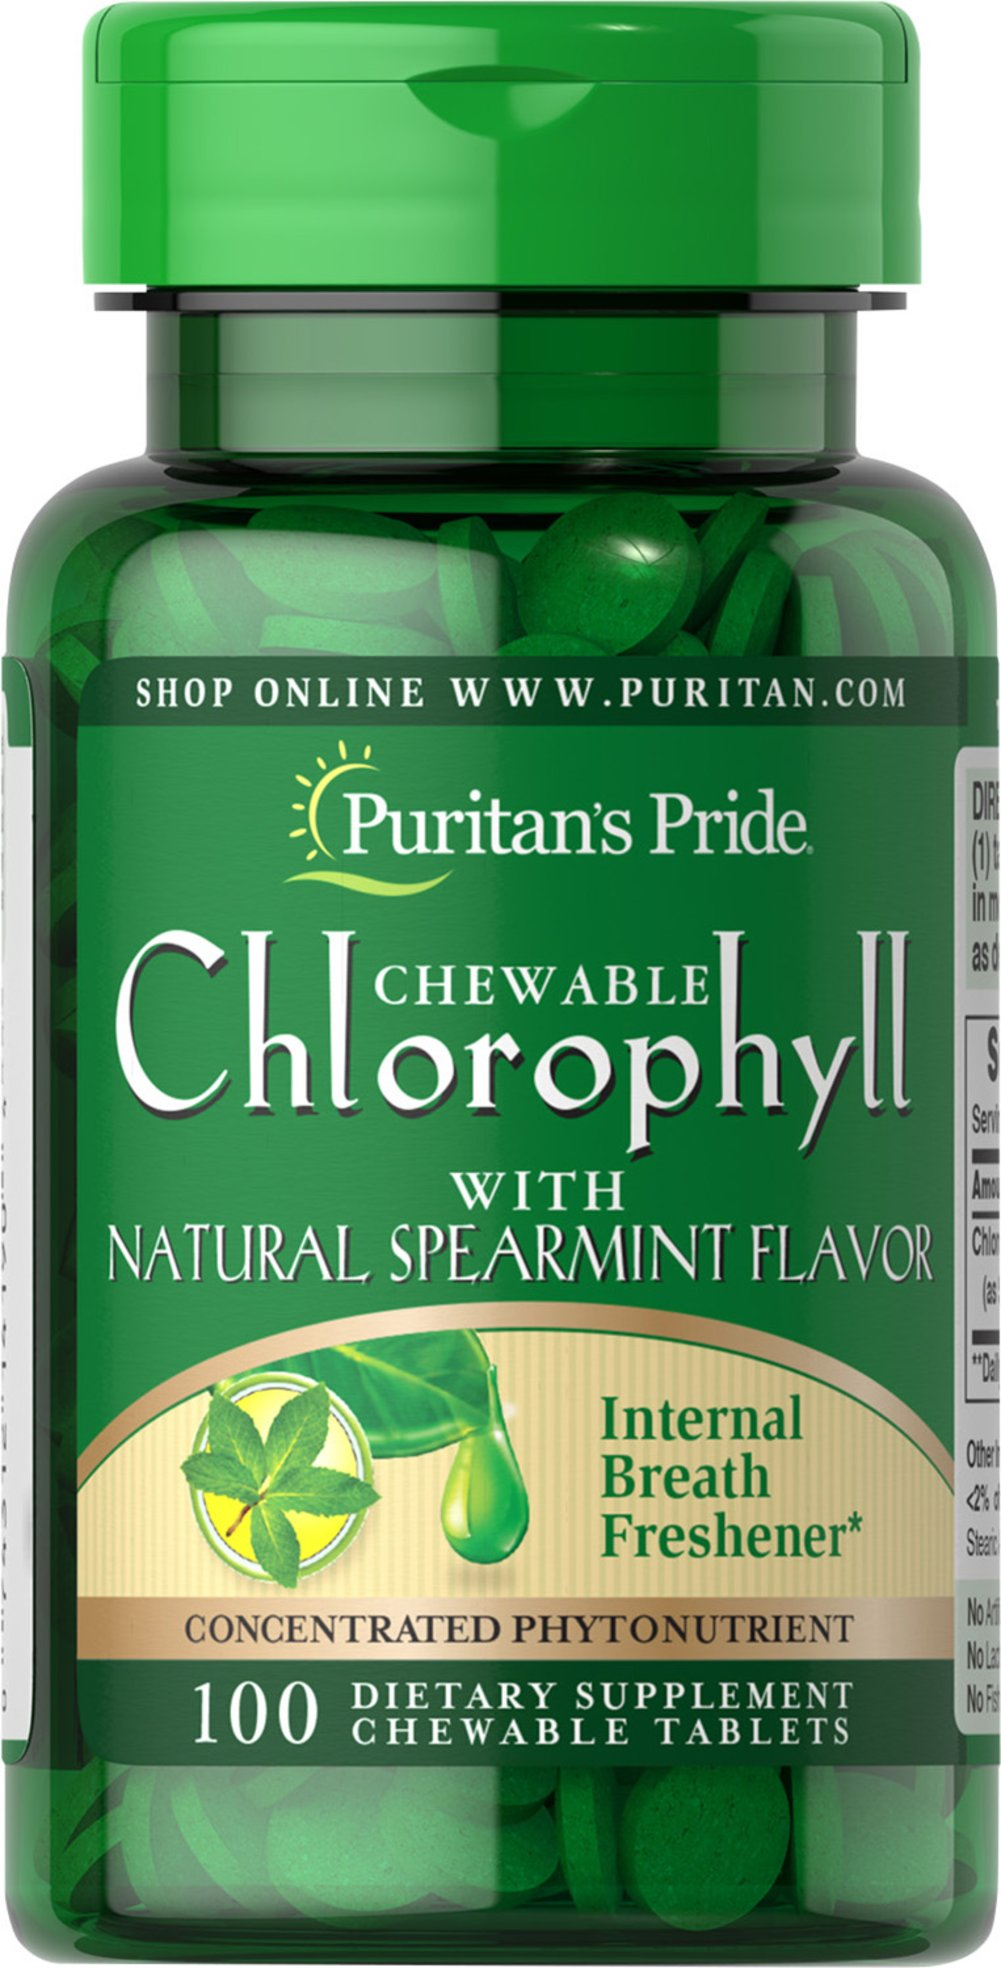 Chewable Chlorophyll with Natural Spearmint Flavor Thumbnail Alternate Bottle View